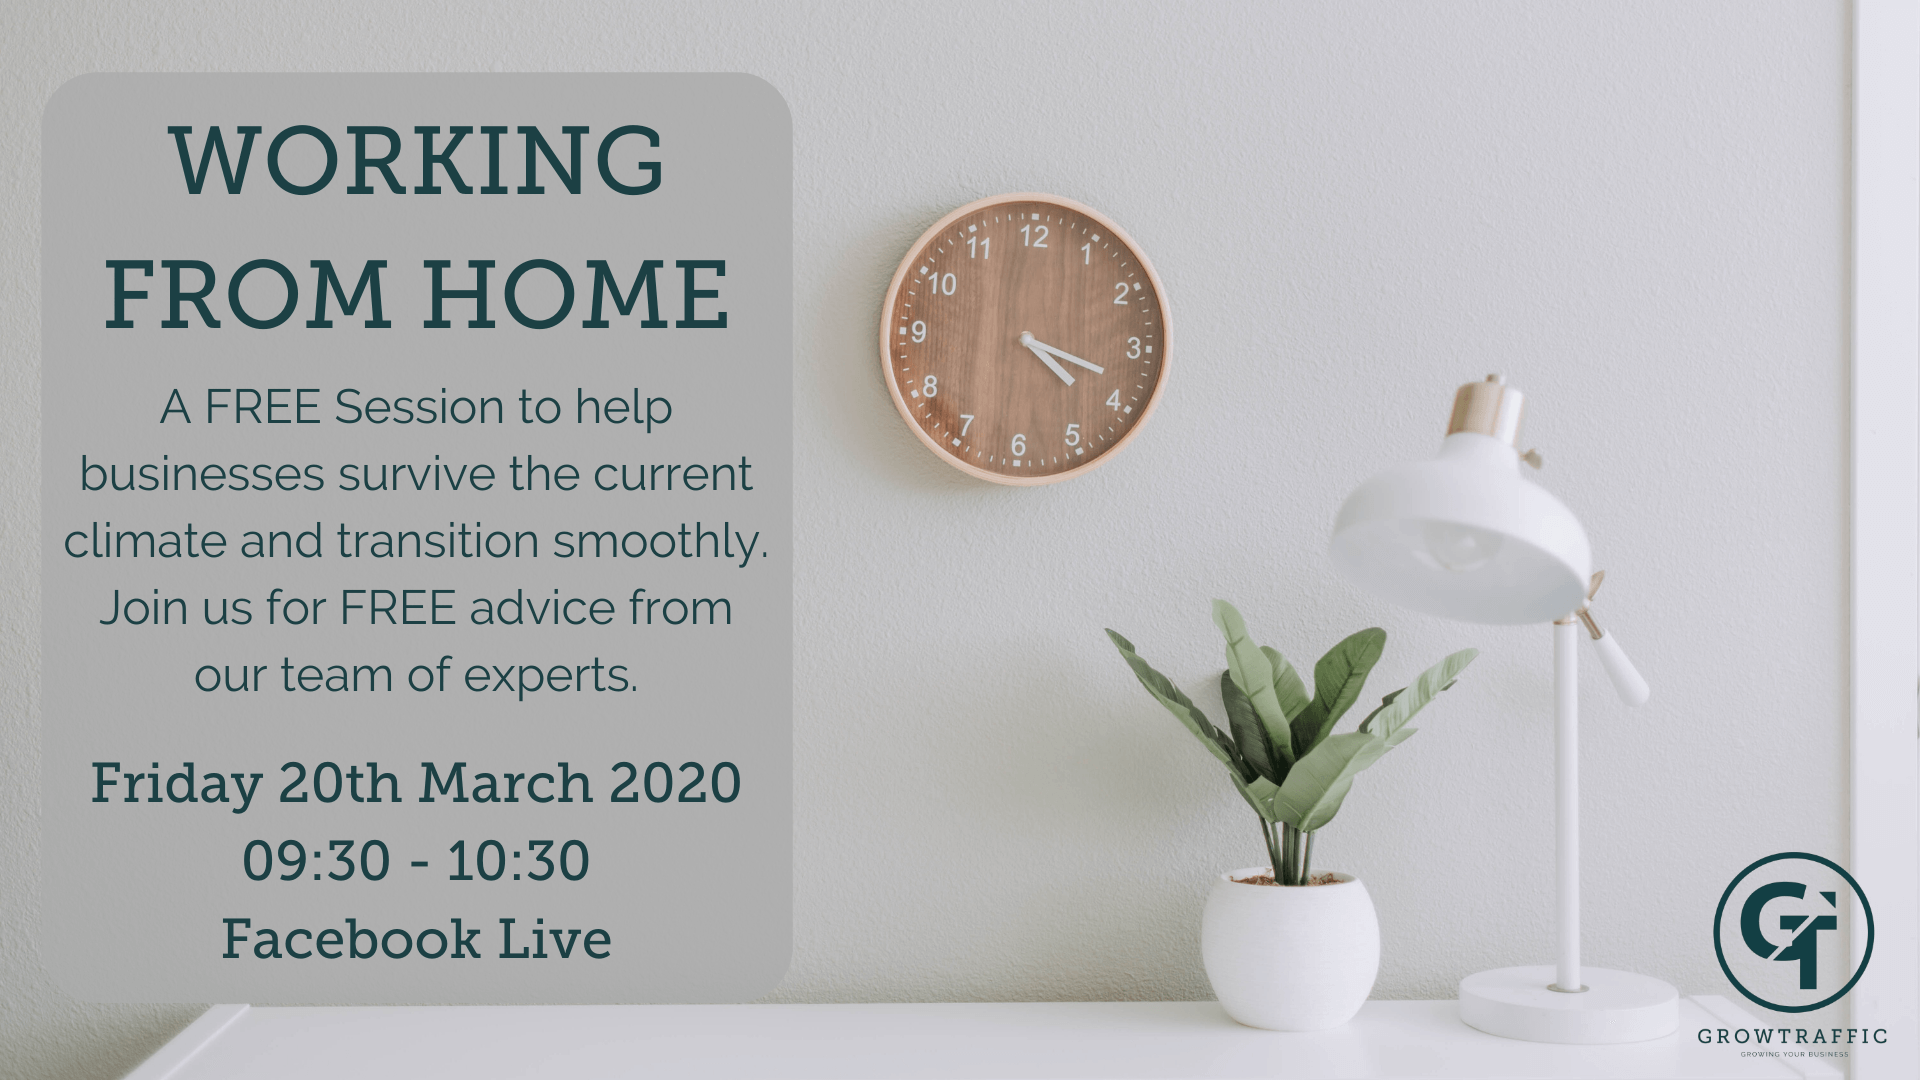 the image is an advert for a GrowTraffic Facebook Live Event on helping businesses work from home on Friday at nine thirty